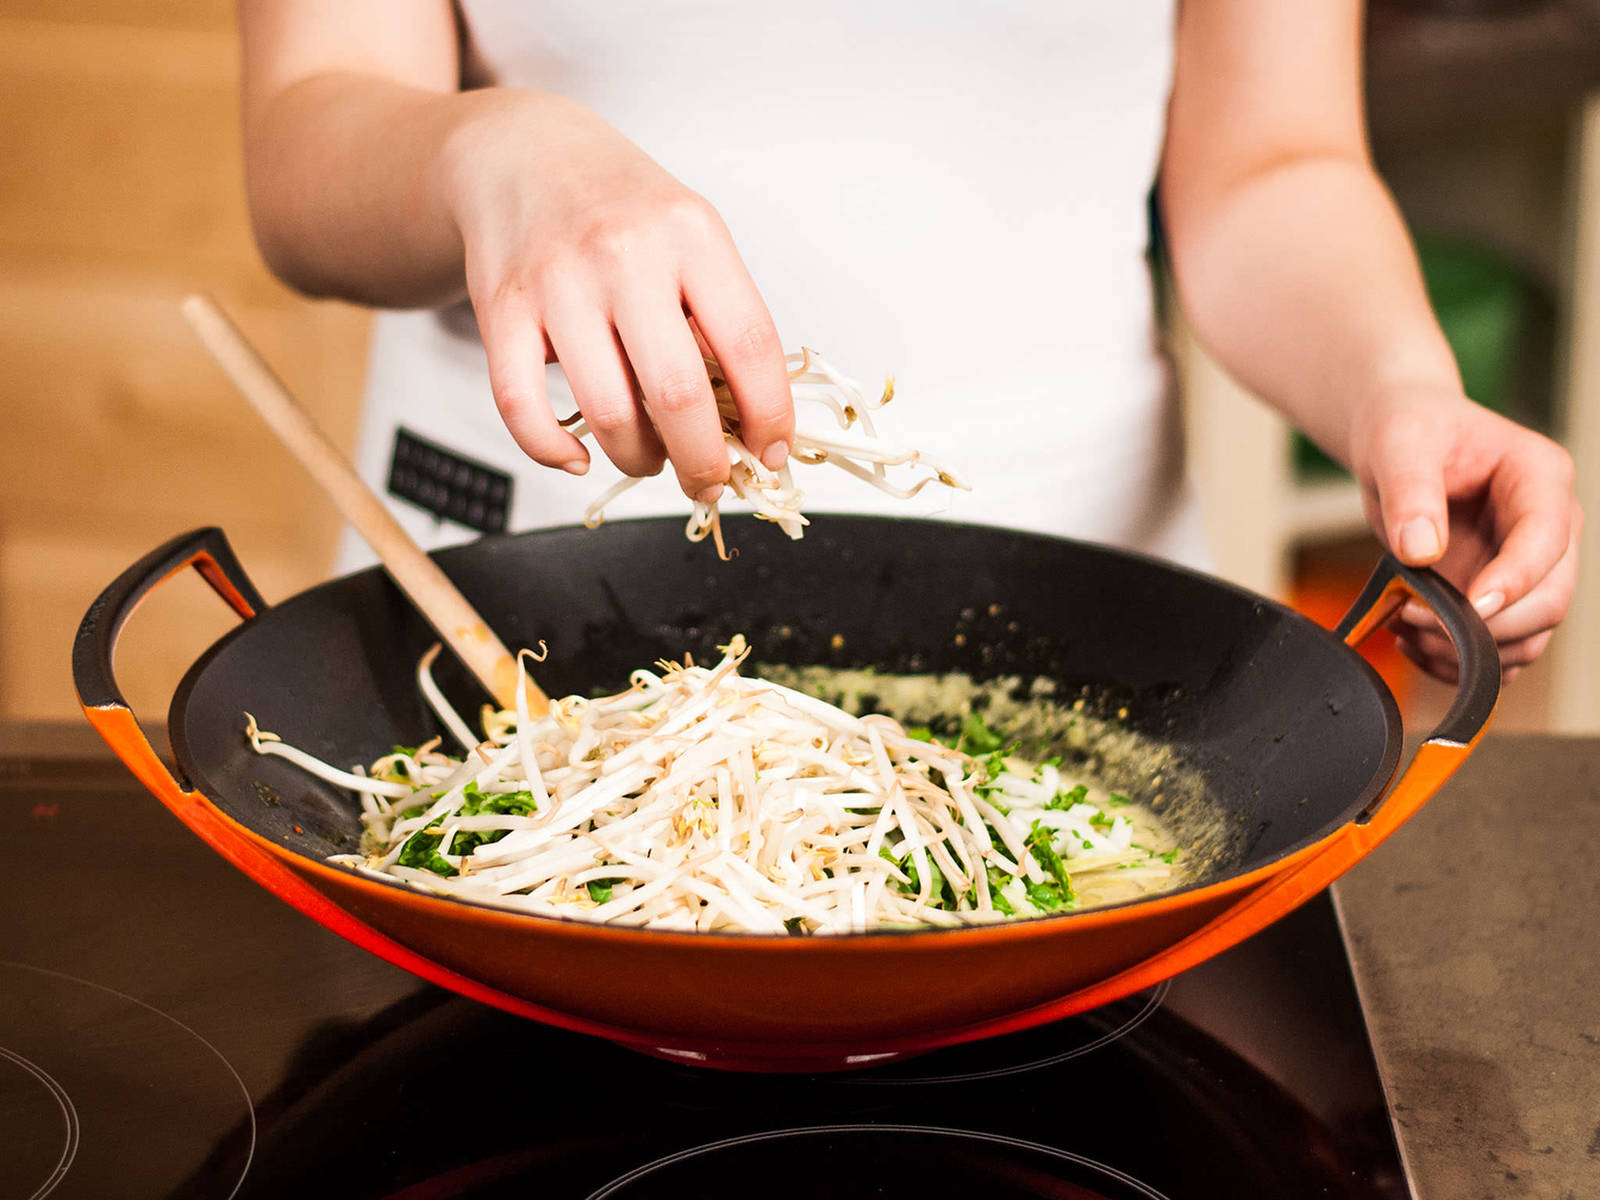 Add coconut milk, lemon grass, bok choy, and soybean sprouts. Allow sauce to reduce over medium-high heat until slightly thickened. Stir occasionally.